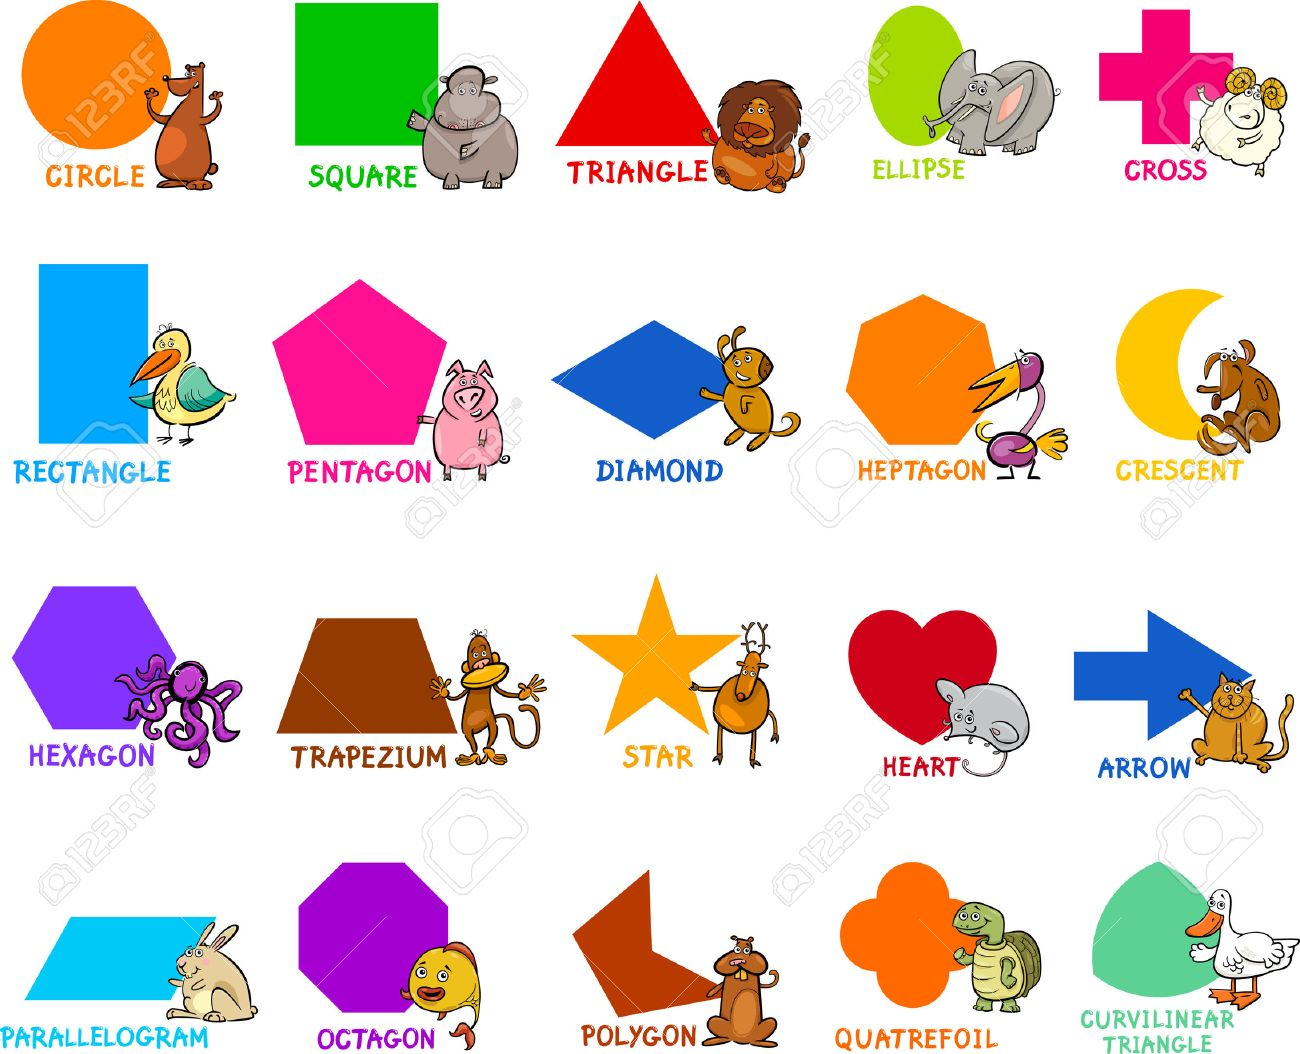 bdd5c60b110 Cartoon Illustration of Educational Basic Geometric Shapes for Preschool or Primary  School Children with Animal Characters